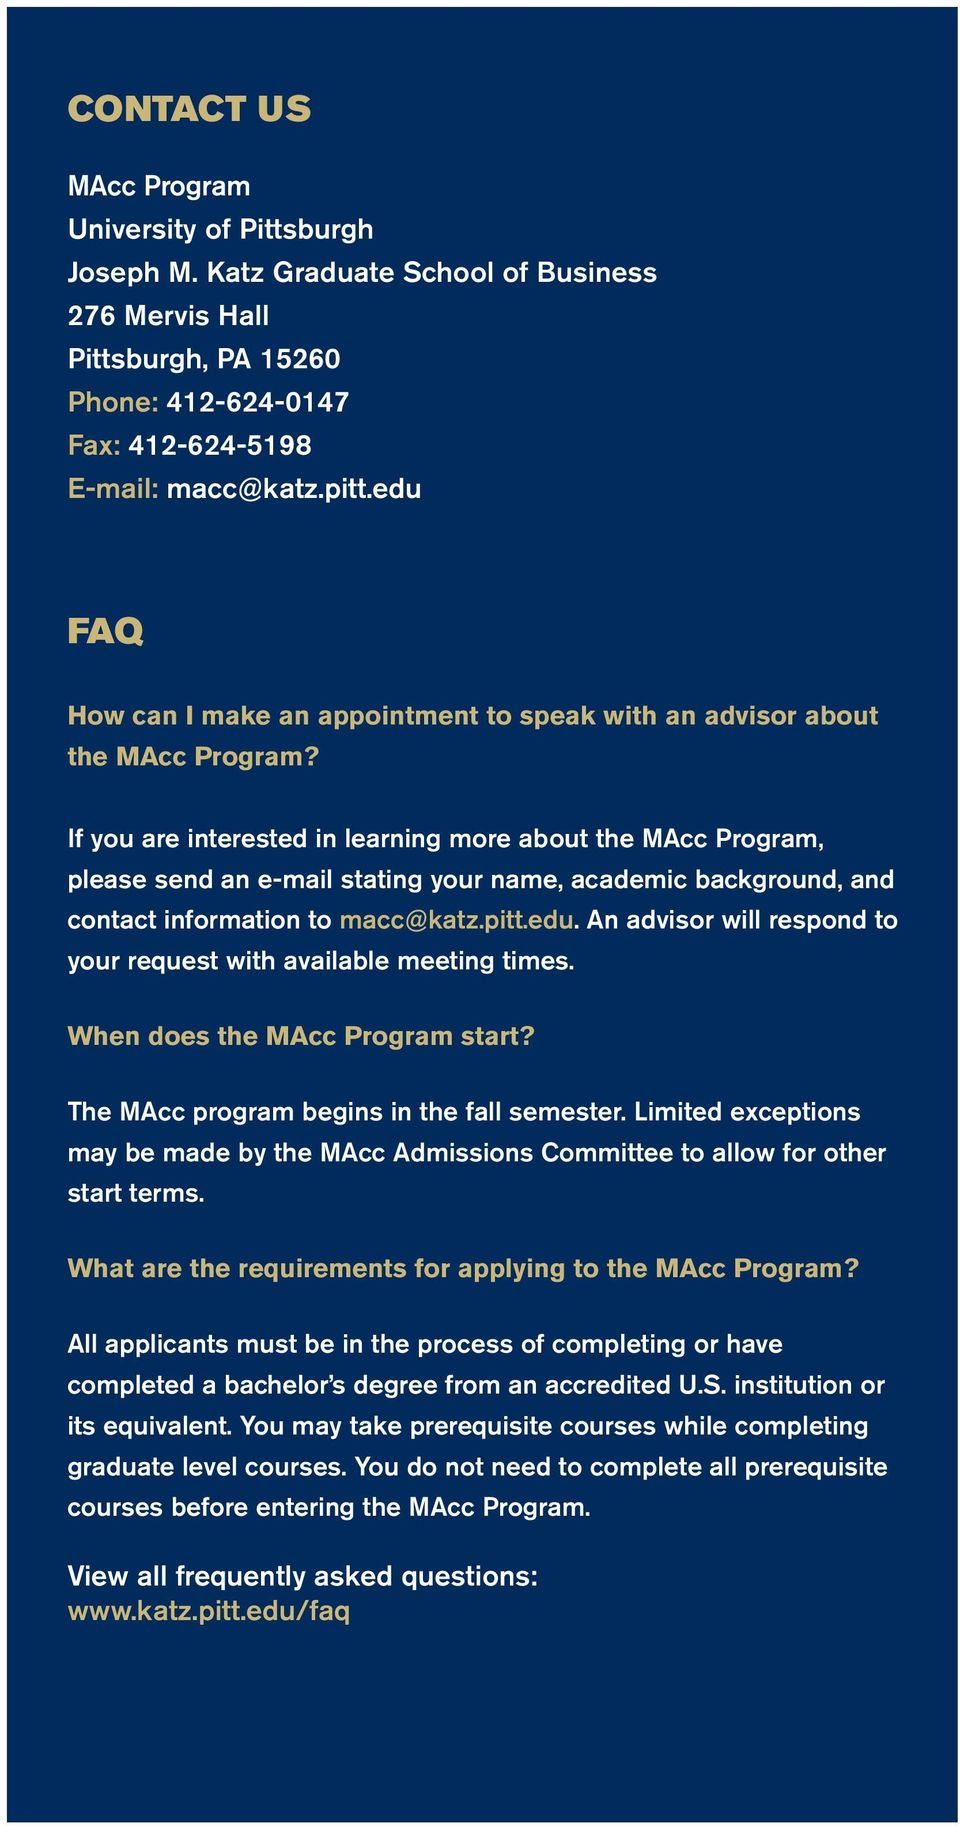 If you are interested in learning more about the MAcc Program, please send an e-mail stating your name, academic background, and contact information to macc@katz.pitt.edu.